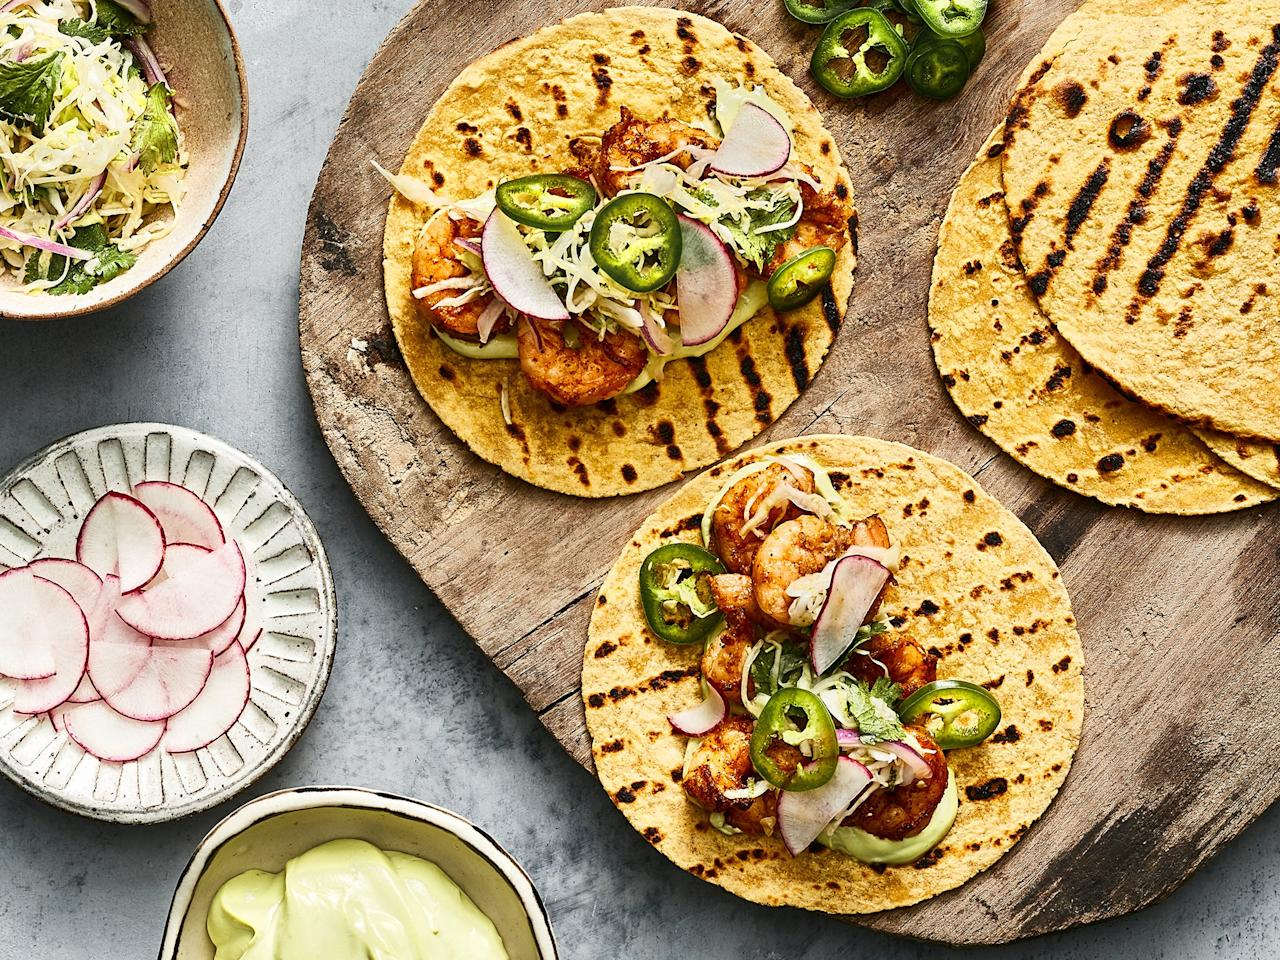 "<p>These easy shrimp tacos are apt to become one of your favorite weeknight dinner go-to's. They're ridiculously fast, they're easily adapted to suit picky palates, and wow, <i>TACO</i> bout flavor. A few pantry spices and about five minutes under the broiler are all it takes to transform raw shrimp into a dynamite taco filling. We add bright crunch with a fresh and zesty cabbage slaw, featuring lime and cilantro, and an element of richness with a simple avocado crema. Of course, feel free to top your shrimp tacos however you choose! You can skip the slaw and opt for shredded lettuce and radishes for a vibrant crispy bite. Or layer on sliced avocado in place of the crema. This is your taco night, after all—do what feels right. And yes, that means that both corn or flour tortillas will work perfectly well here; just be sure to warm them up a bit before layering on your shrimp and toppings.</p> <p><a href=""https://www.myrecipes.com/recipe/shrimp-tacos-cabbage-slaw"">Shrimp Tacos with Cilantro-Lime Slaw&nbsp; Recipe</a></p>"